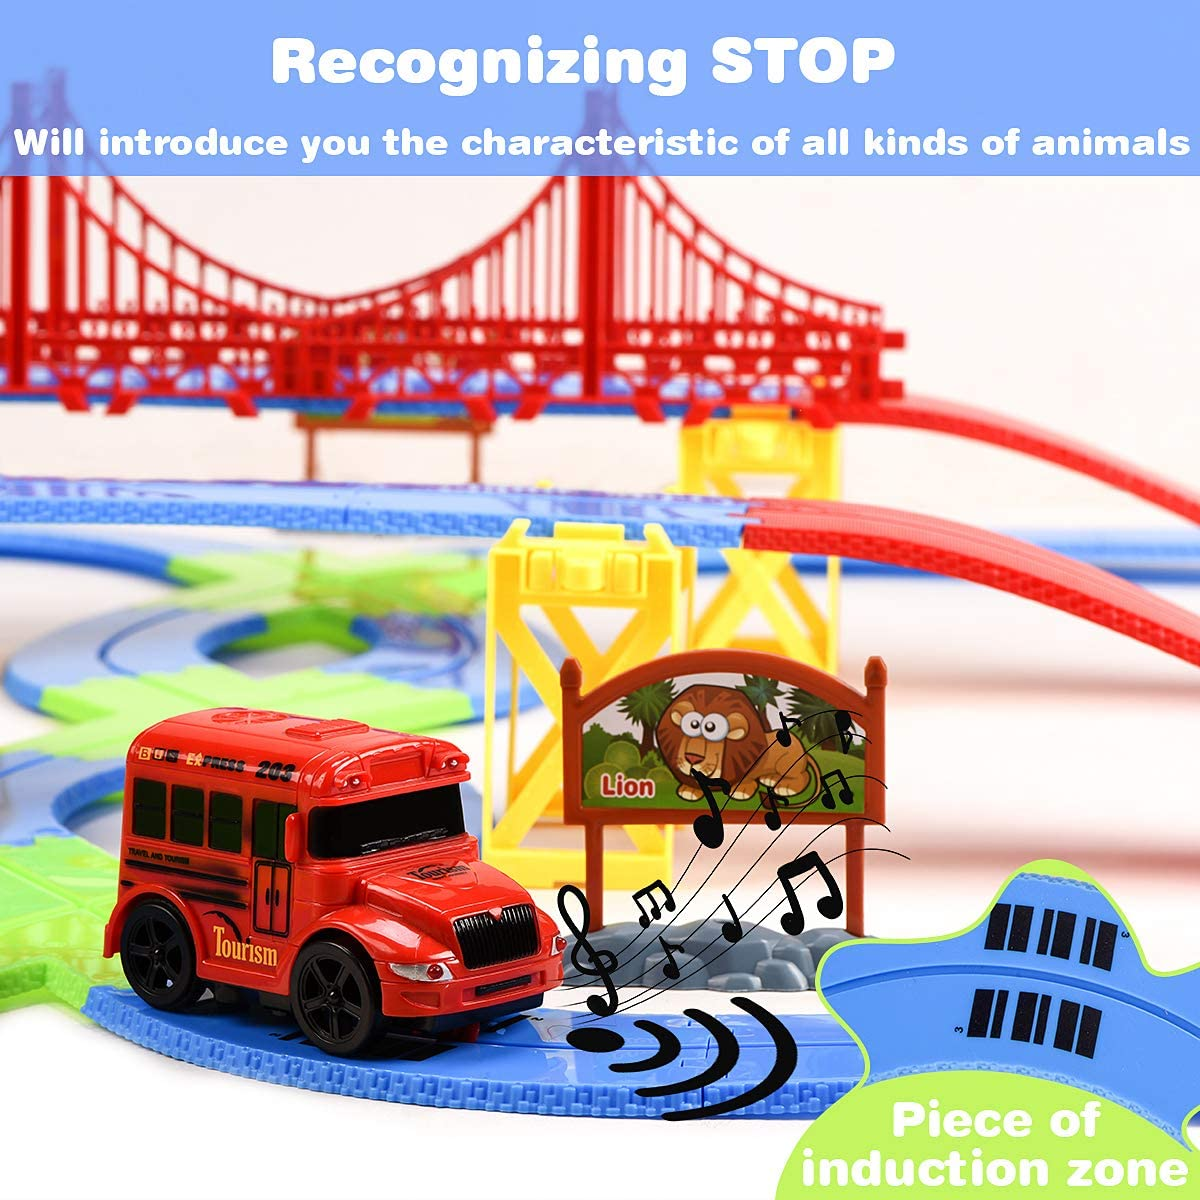 Animals Recognizing Stop Bridge and Buildings 81 Pcs Toys PlaySet with Touring Car for Toddlers Toy Gift for 3+ Years Old Boys and Girls Kids Zoo Toy Car Track Set Play Figurines